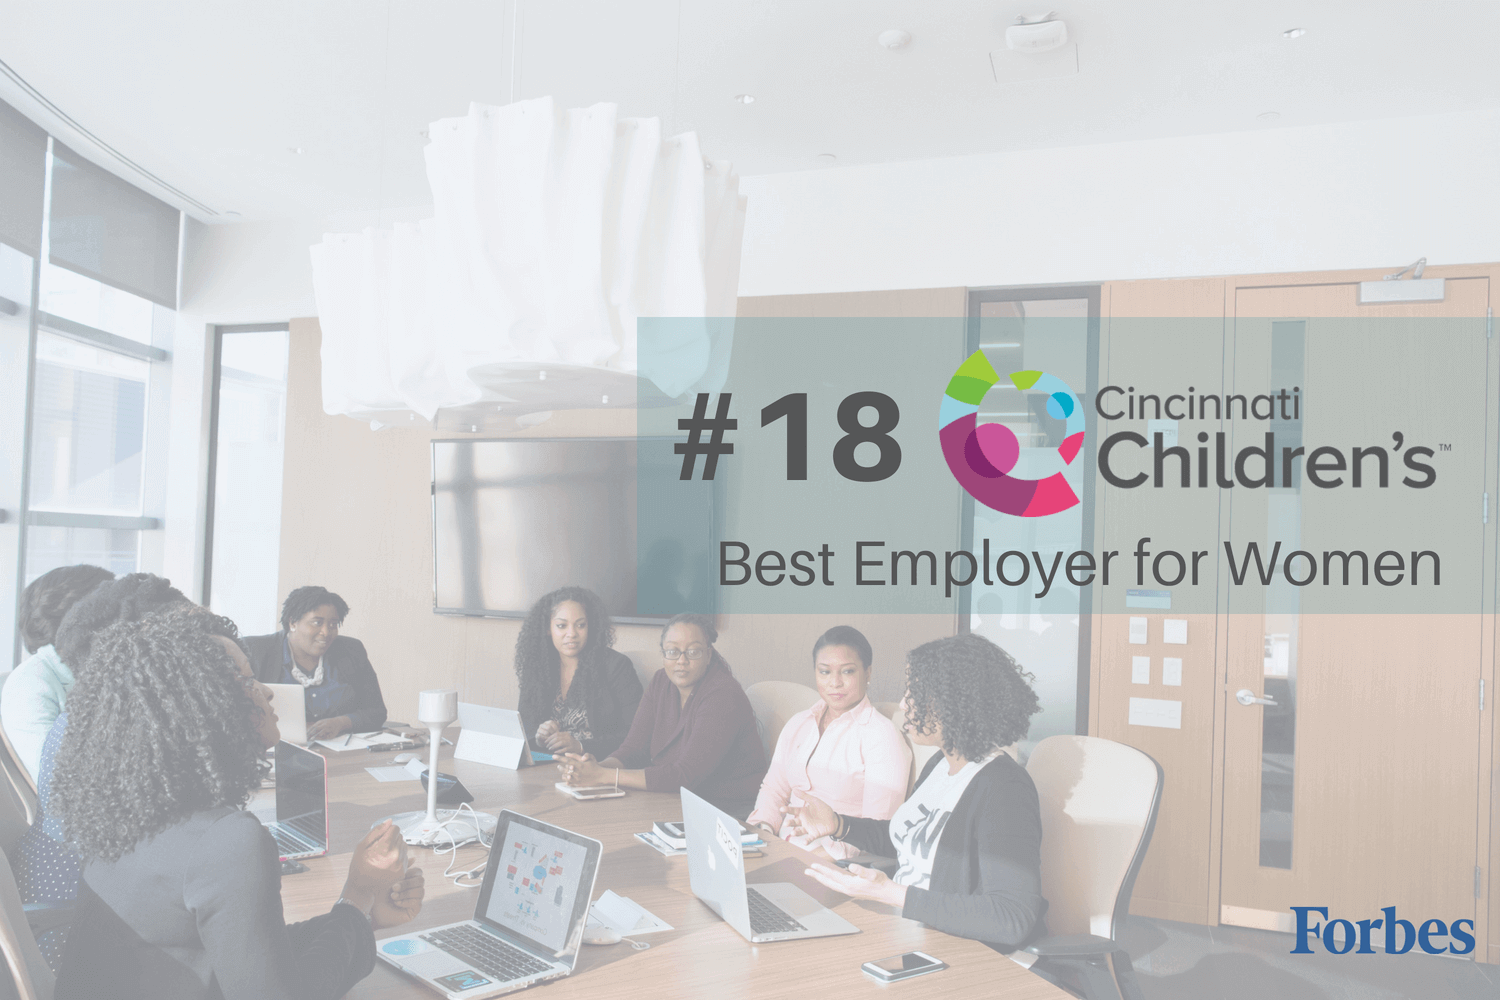 Cincinnati Children's Women in Workplace Award